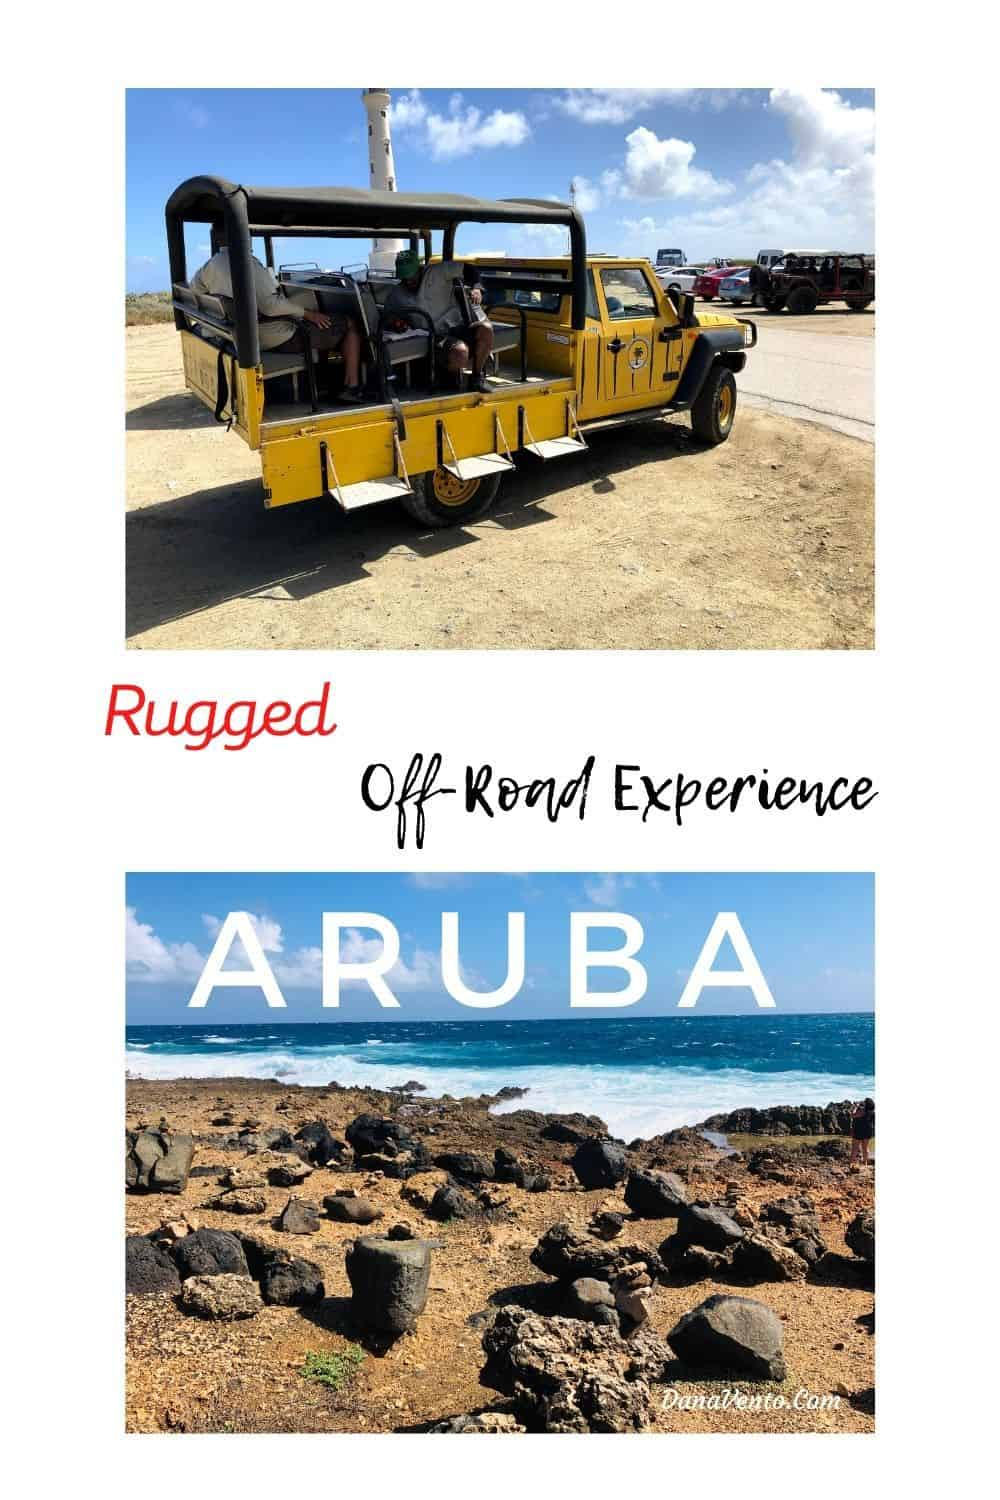 Rugged Off Road Experience the vehicle and terrain 1